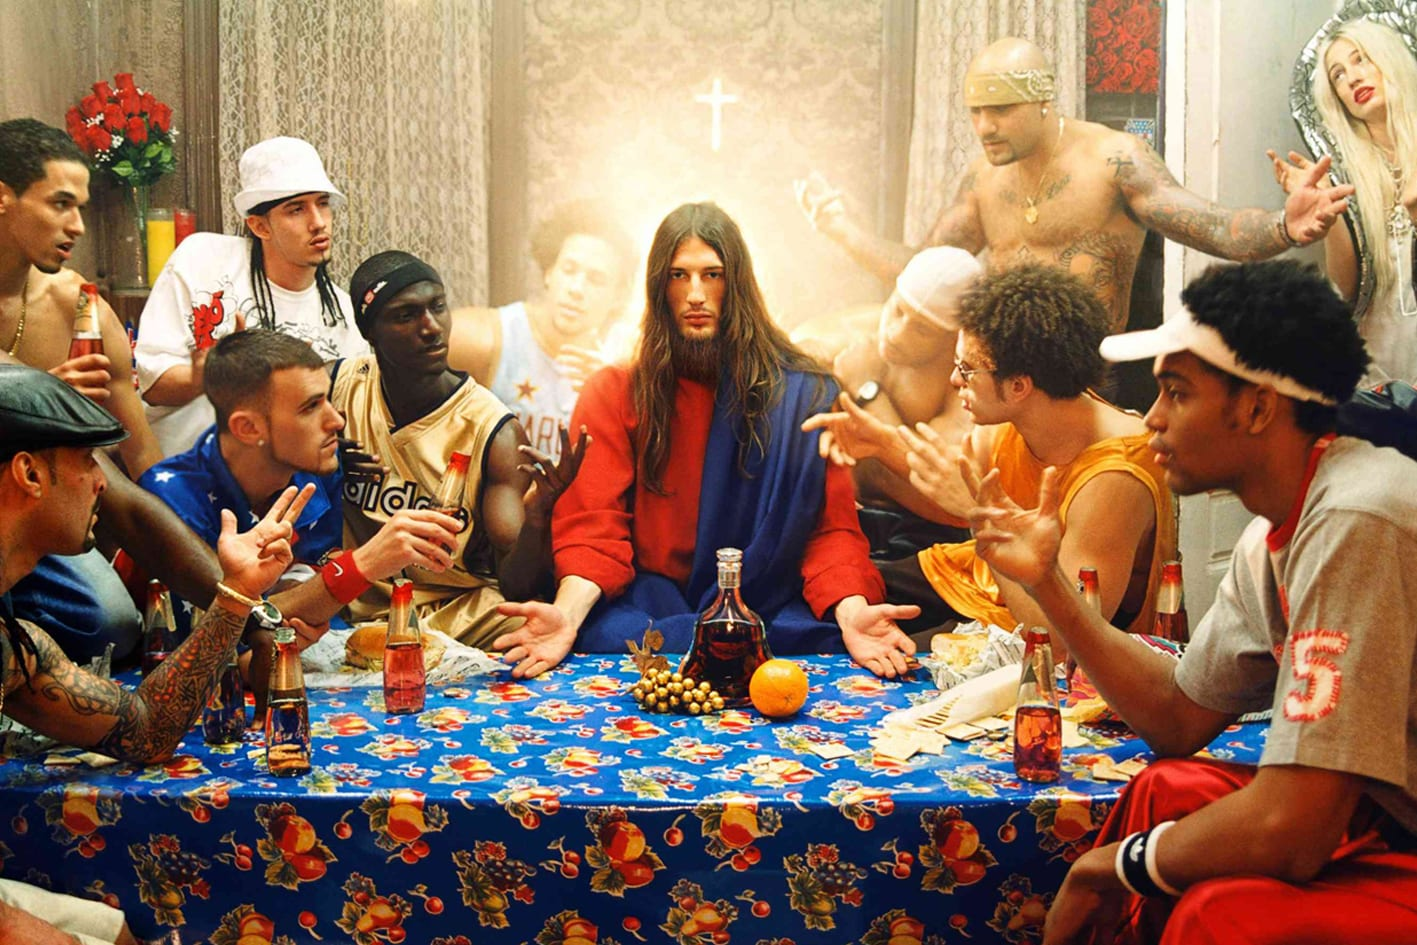 David Lachapelle Antidote La Cene Catholicisme Bling